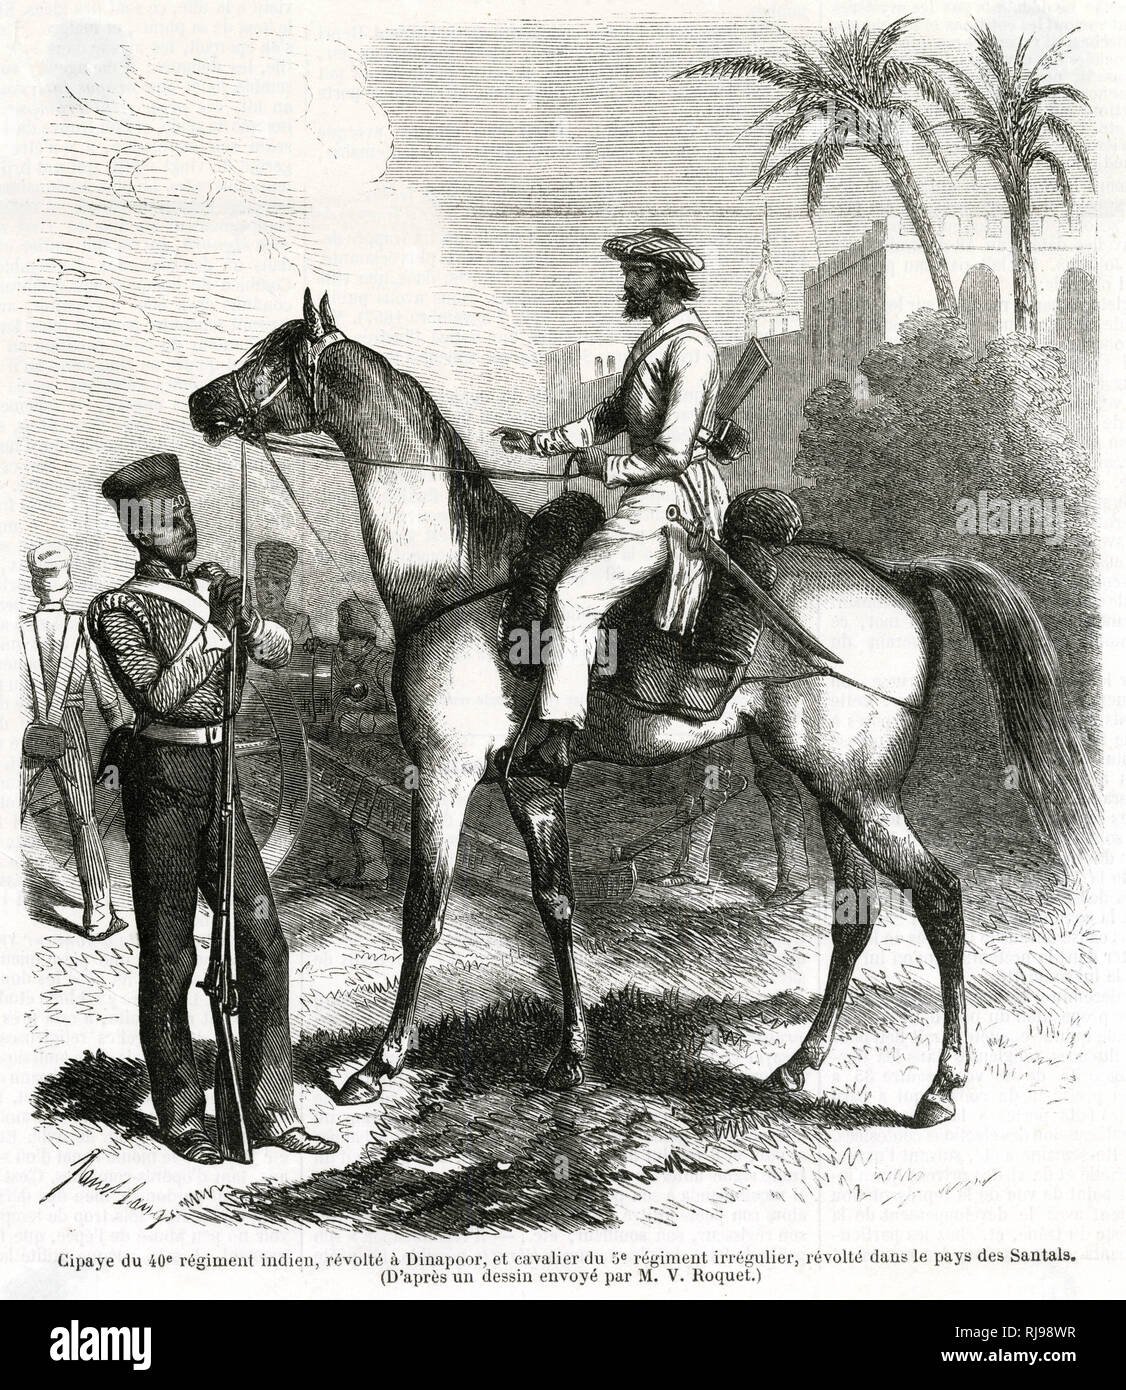 Indian sepoy of the 40th Indian Regiment (left) and a cavalryman of